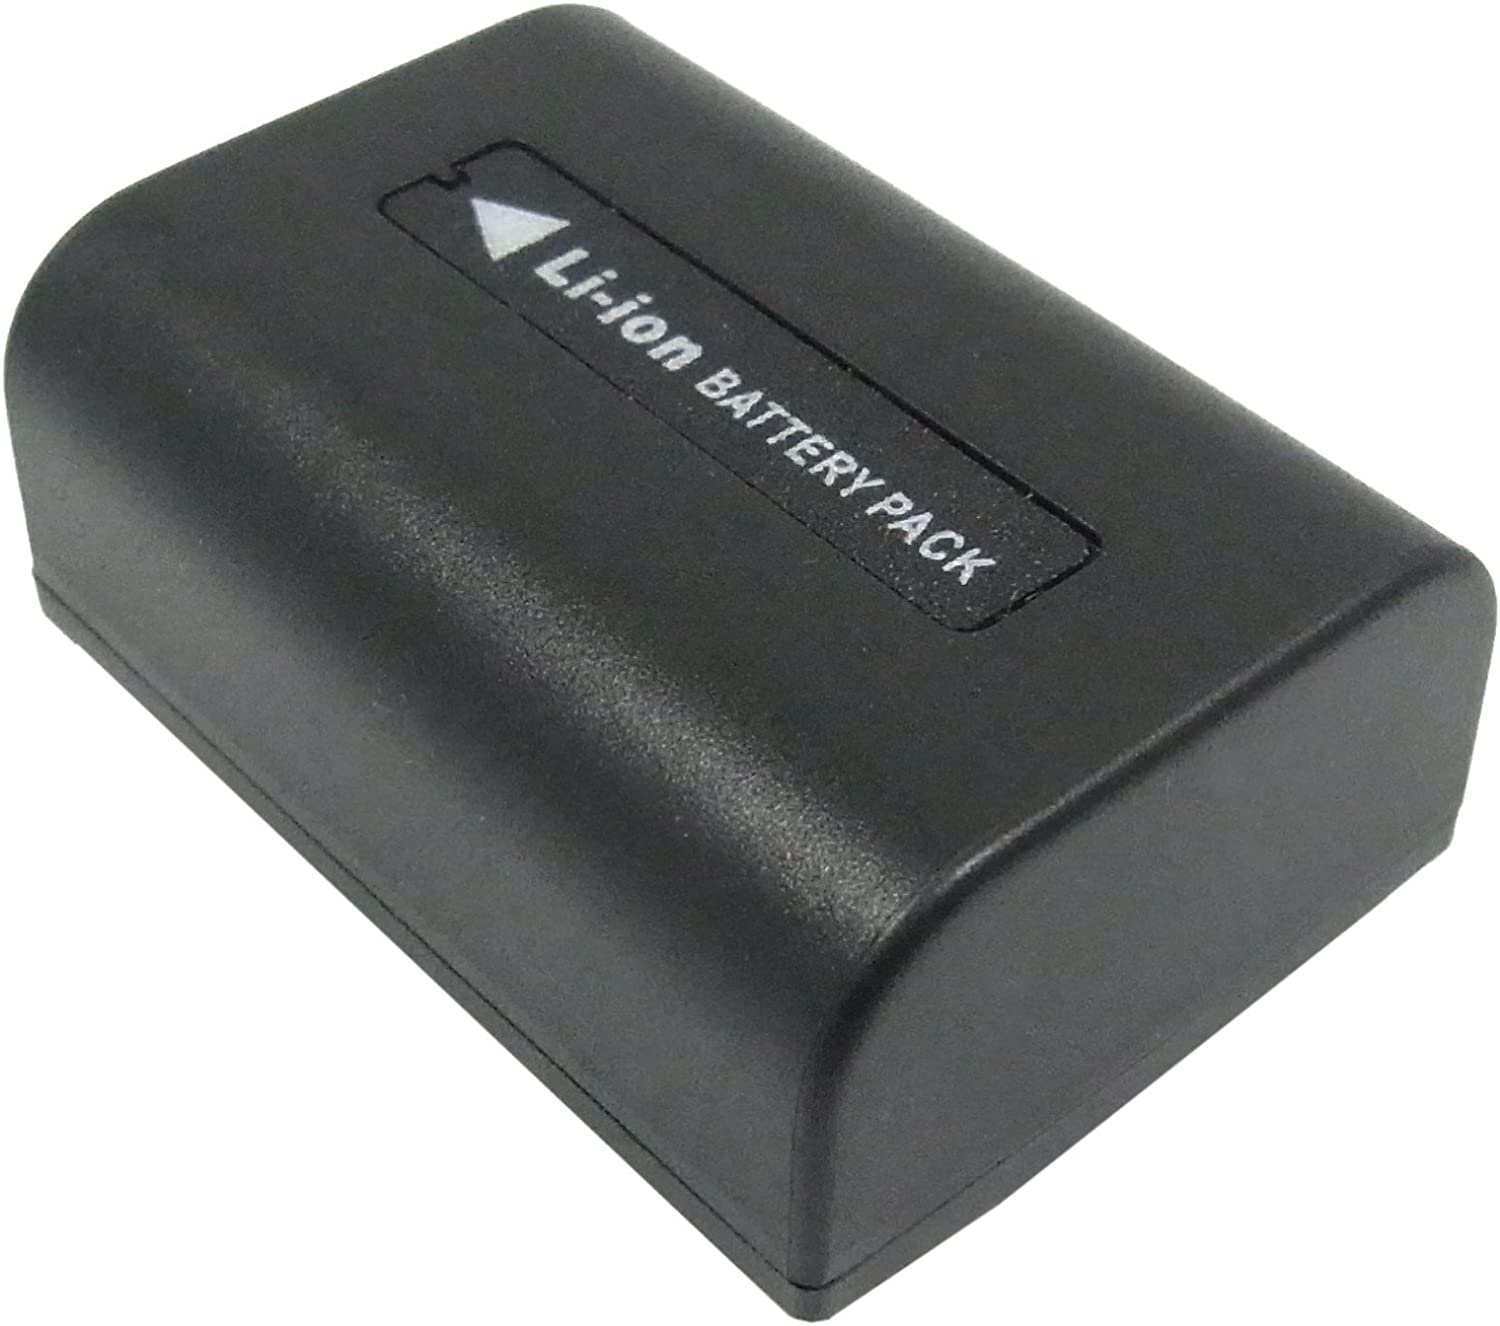 Battery Replacement for Sony HDR-TD20V Record